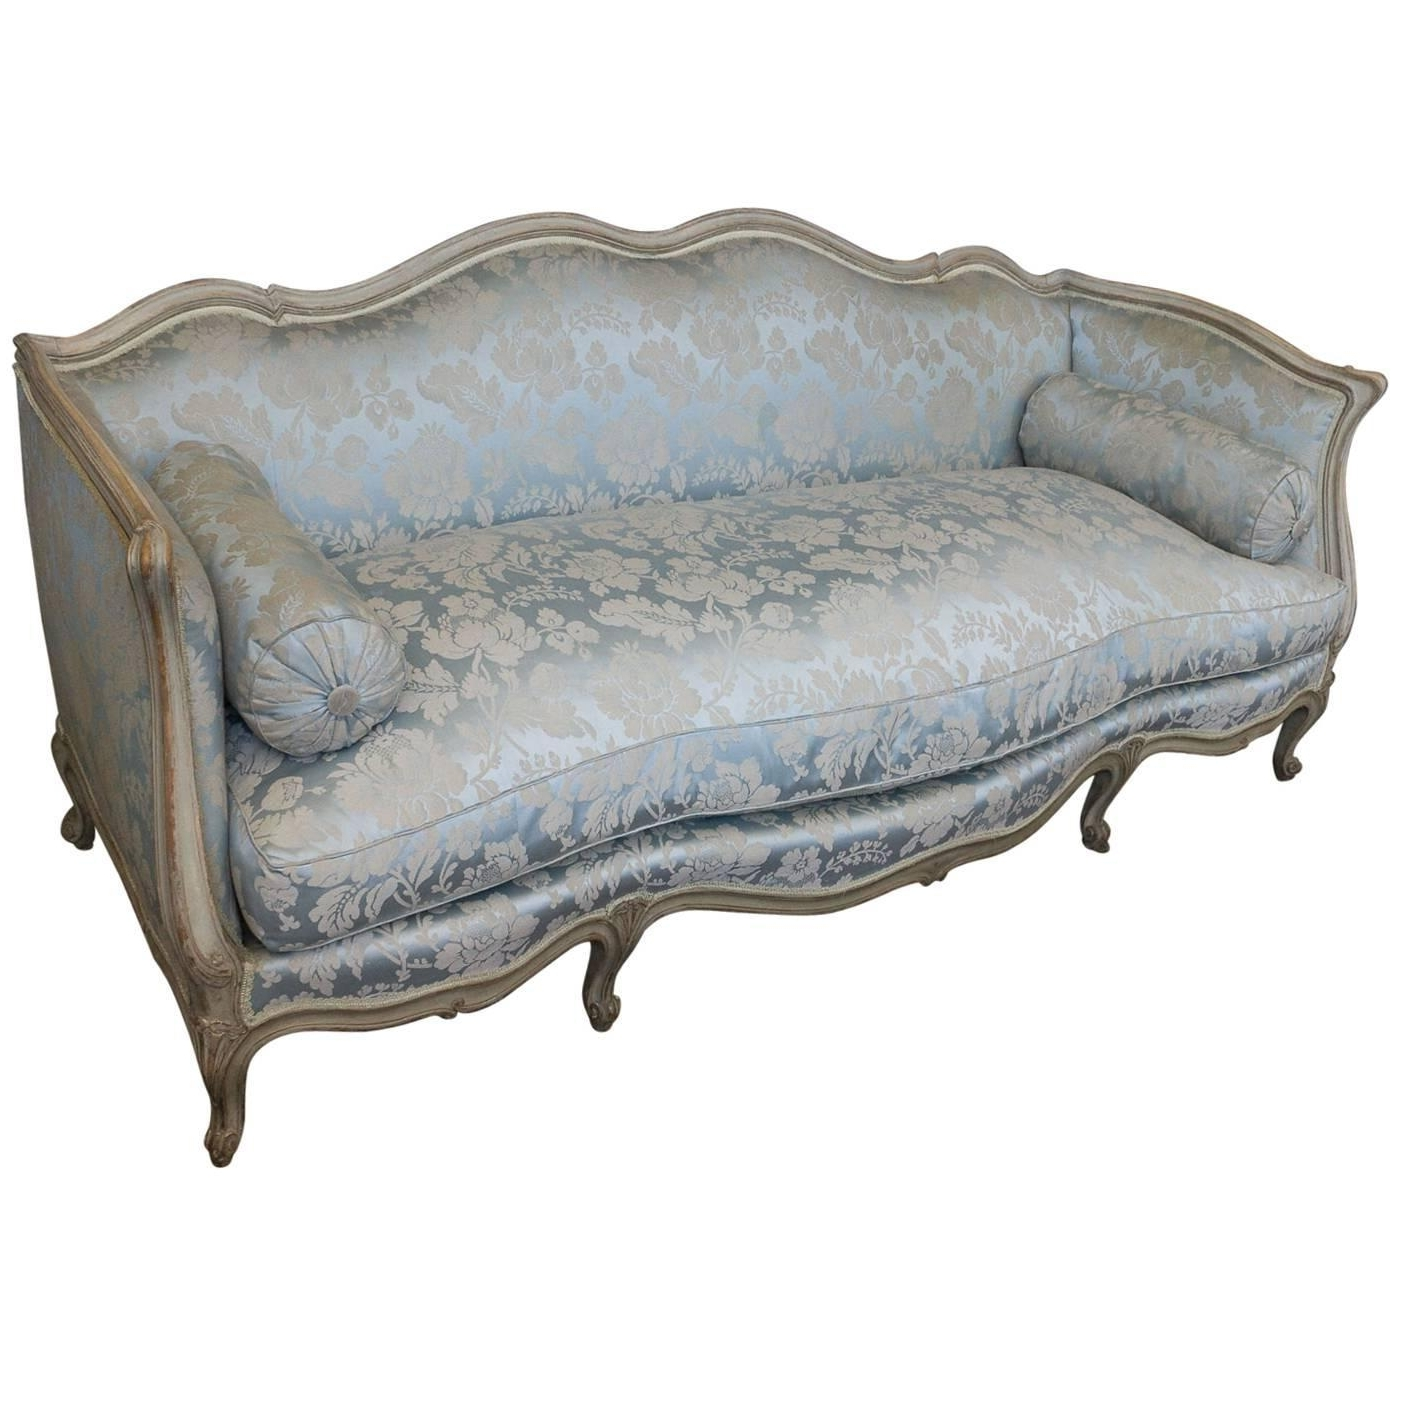 Well Liked French Louis Xv Style Sofa Attributed To Maison Jansen For Sale At For French Style Sofas (View 18 of 20)